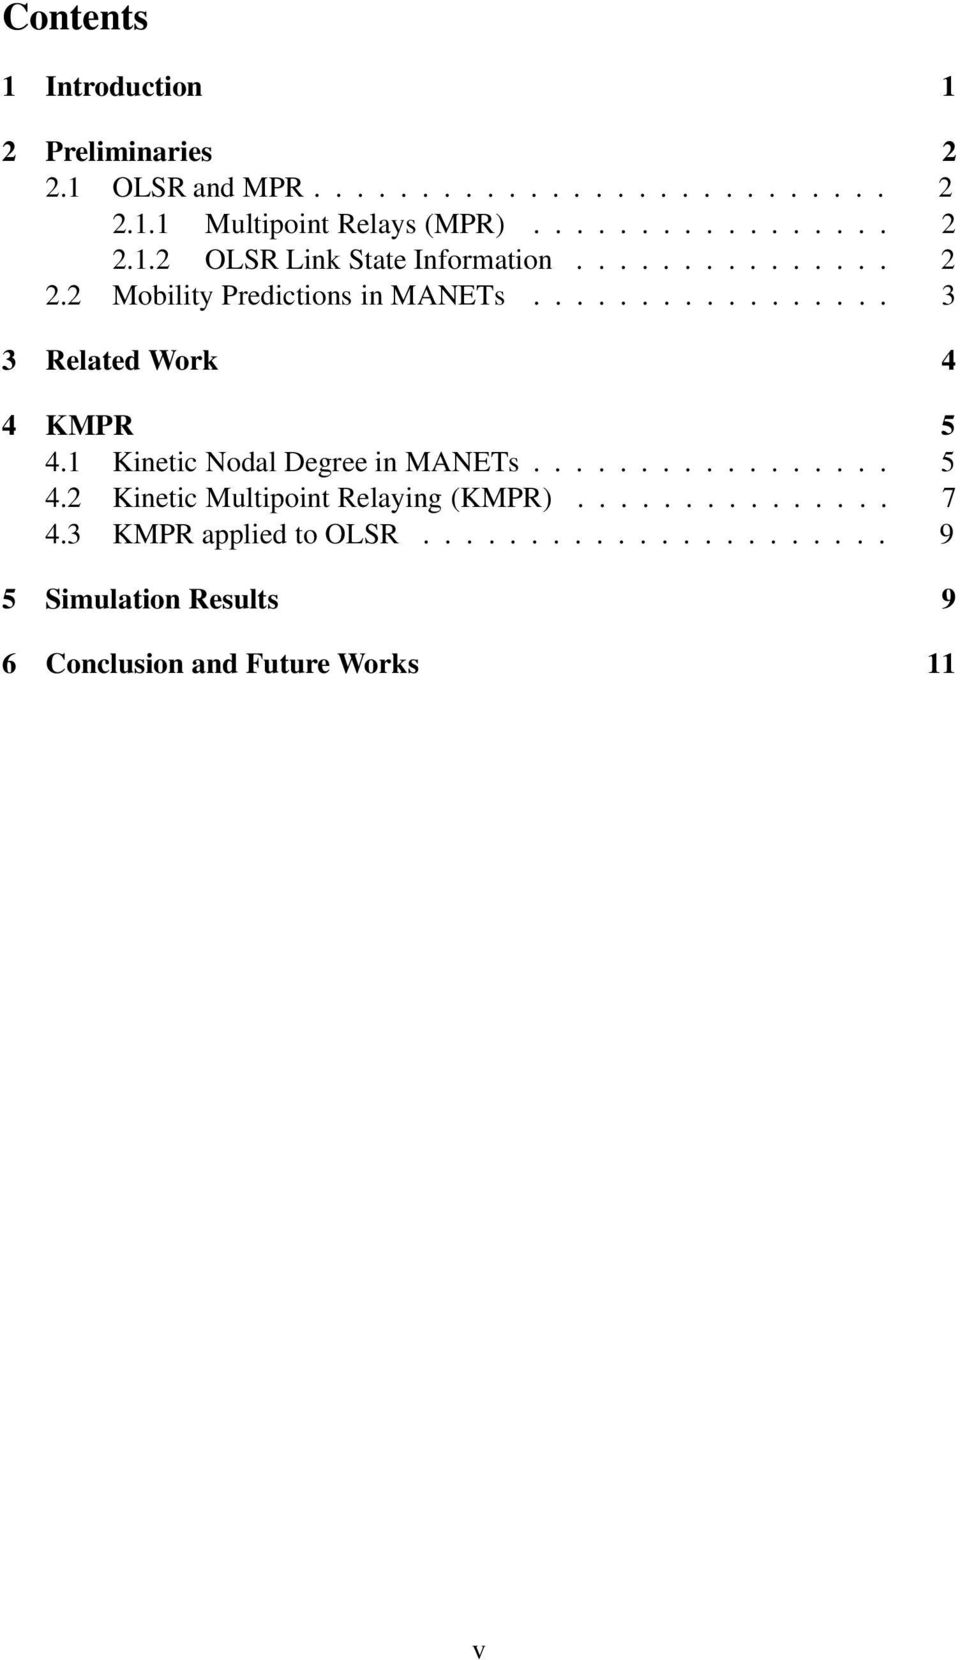 ..... 3 3 Related Work 4 4 KMPR 5 4.1 Kinetic Nodal Degree in MANETs...... 5 4.2 Kinetic Multipoint Relaying (KMPR).